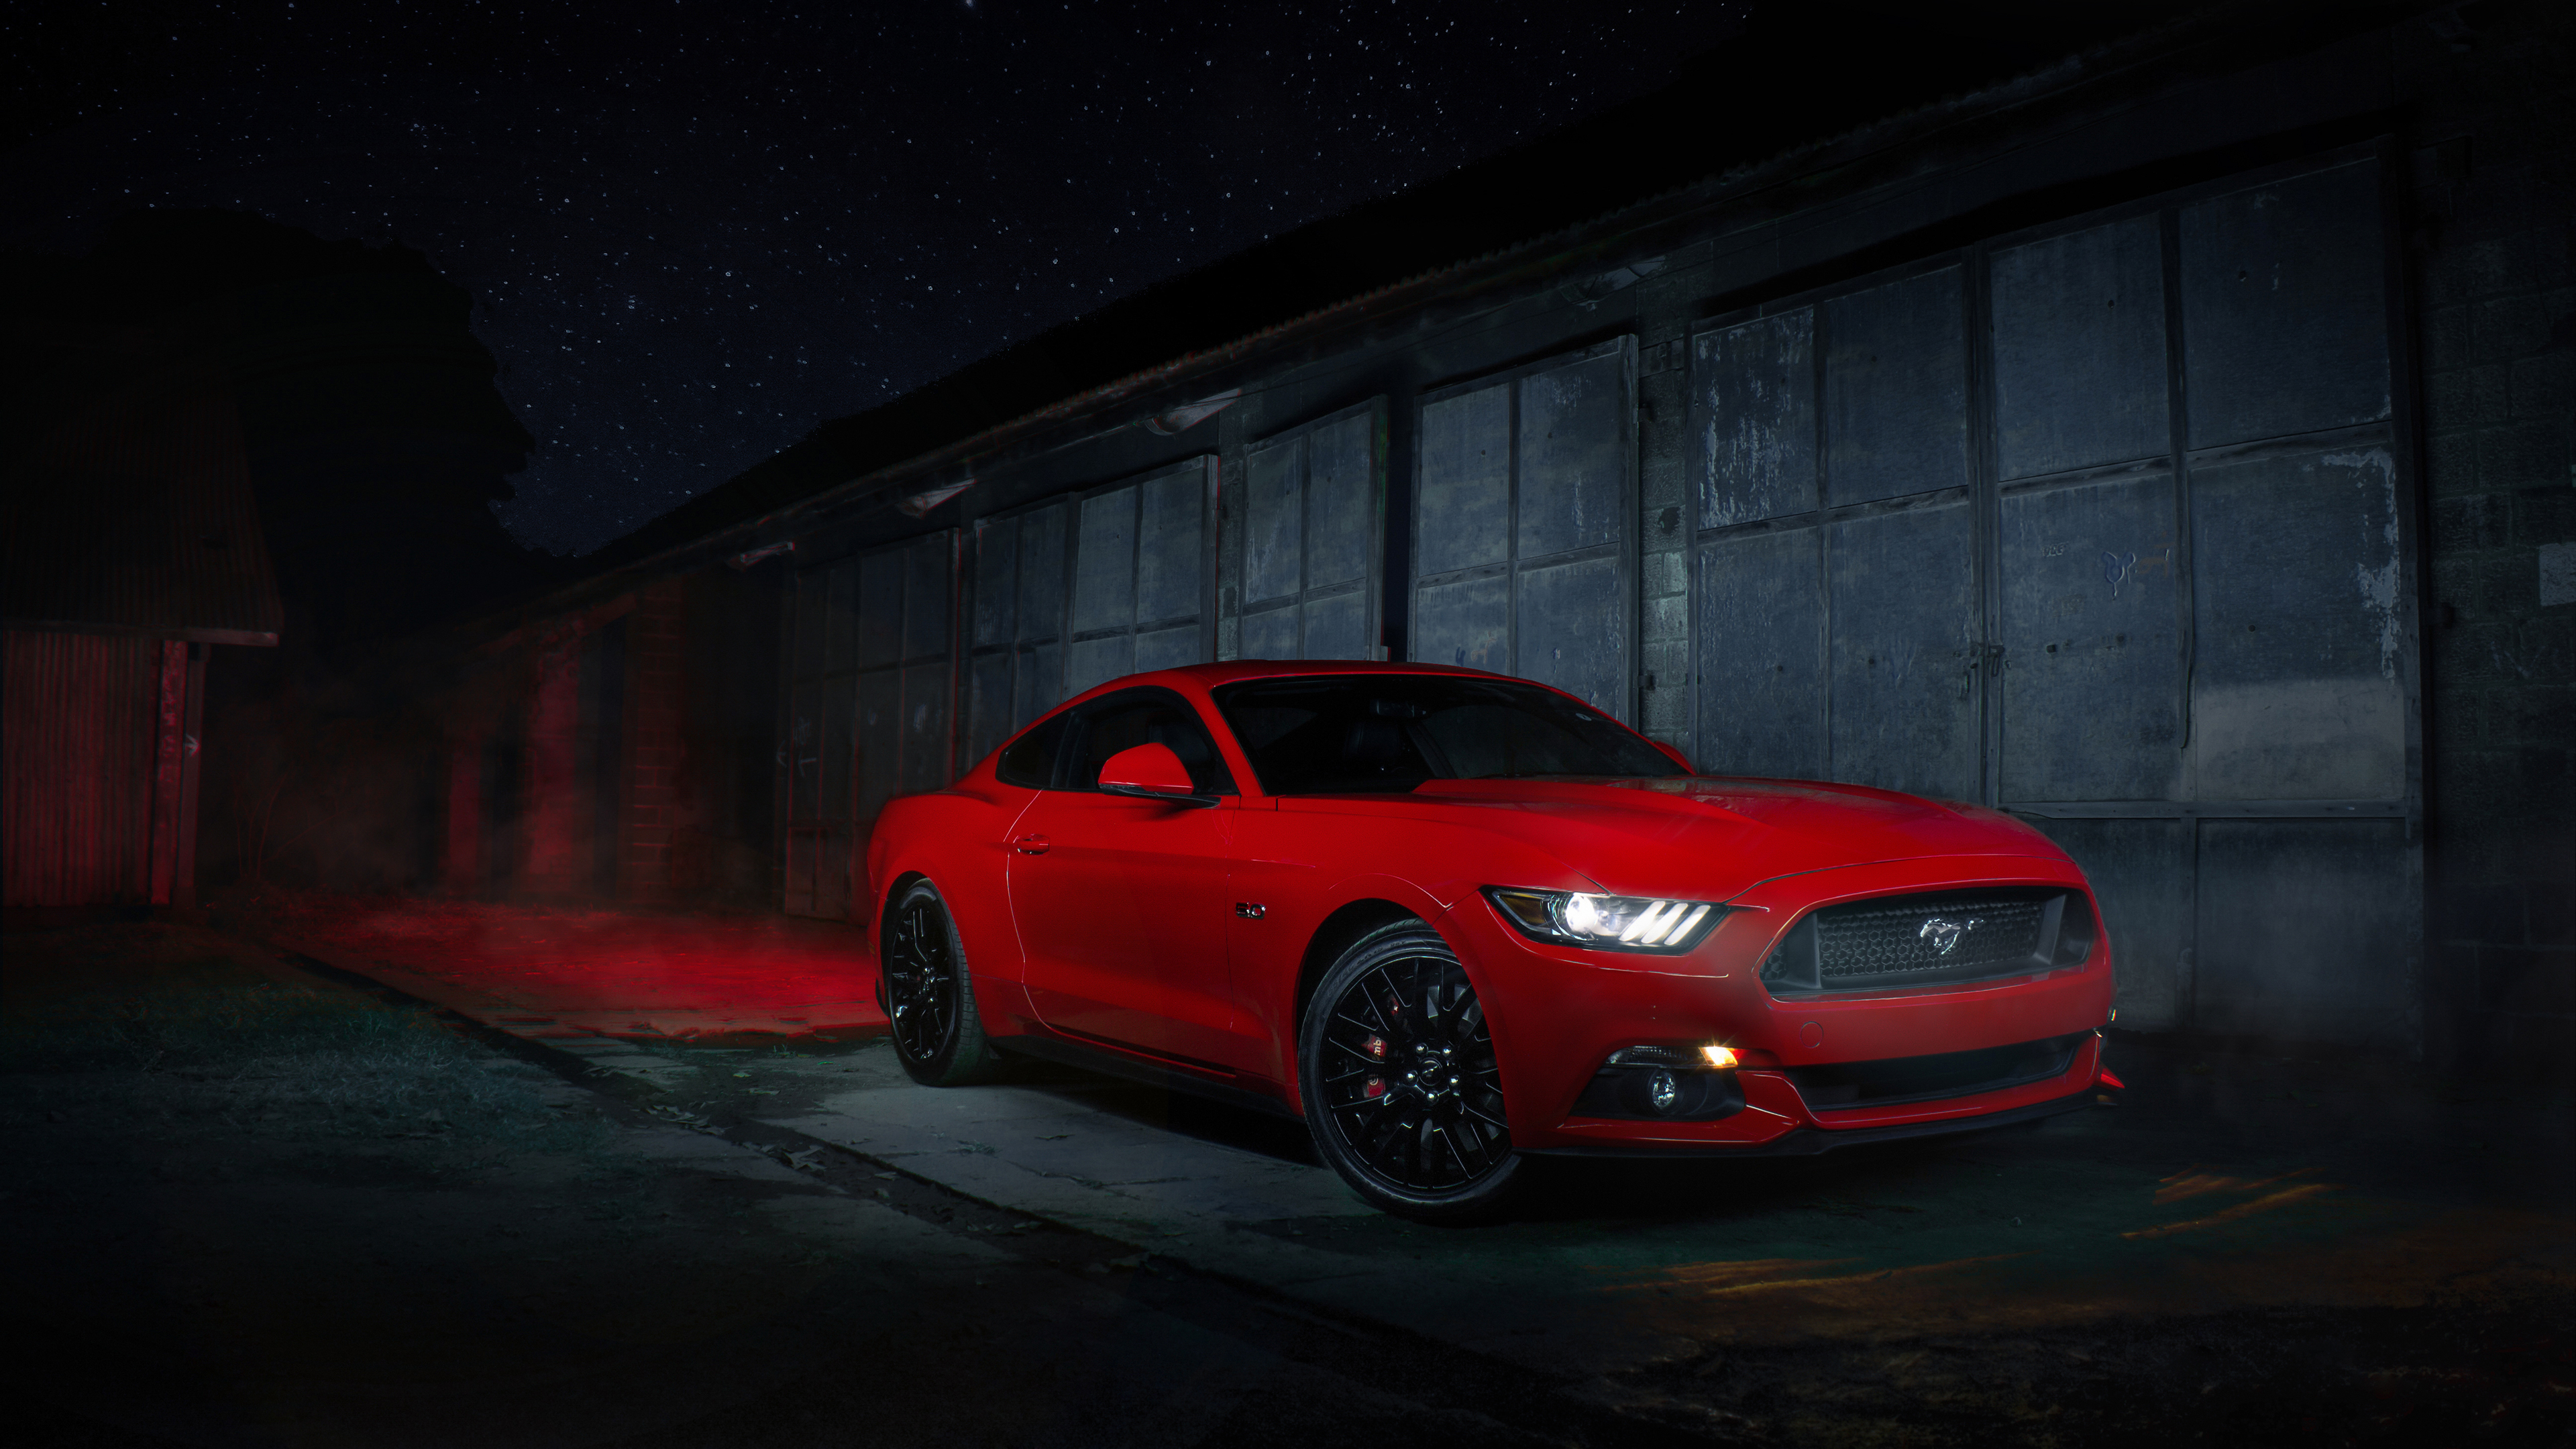 Ford Mustang Fastback >> Ford Mustang 4K Wallpaper   HD Car Wallpapers   ID #12359